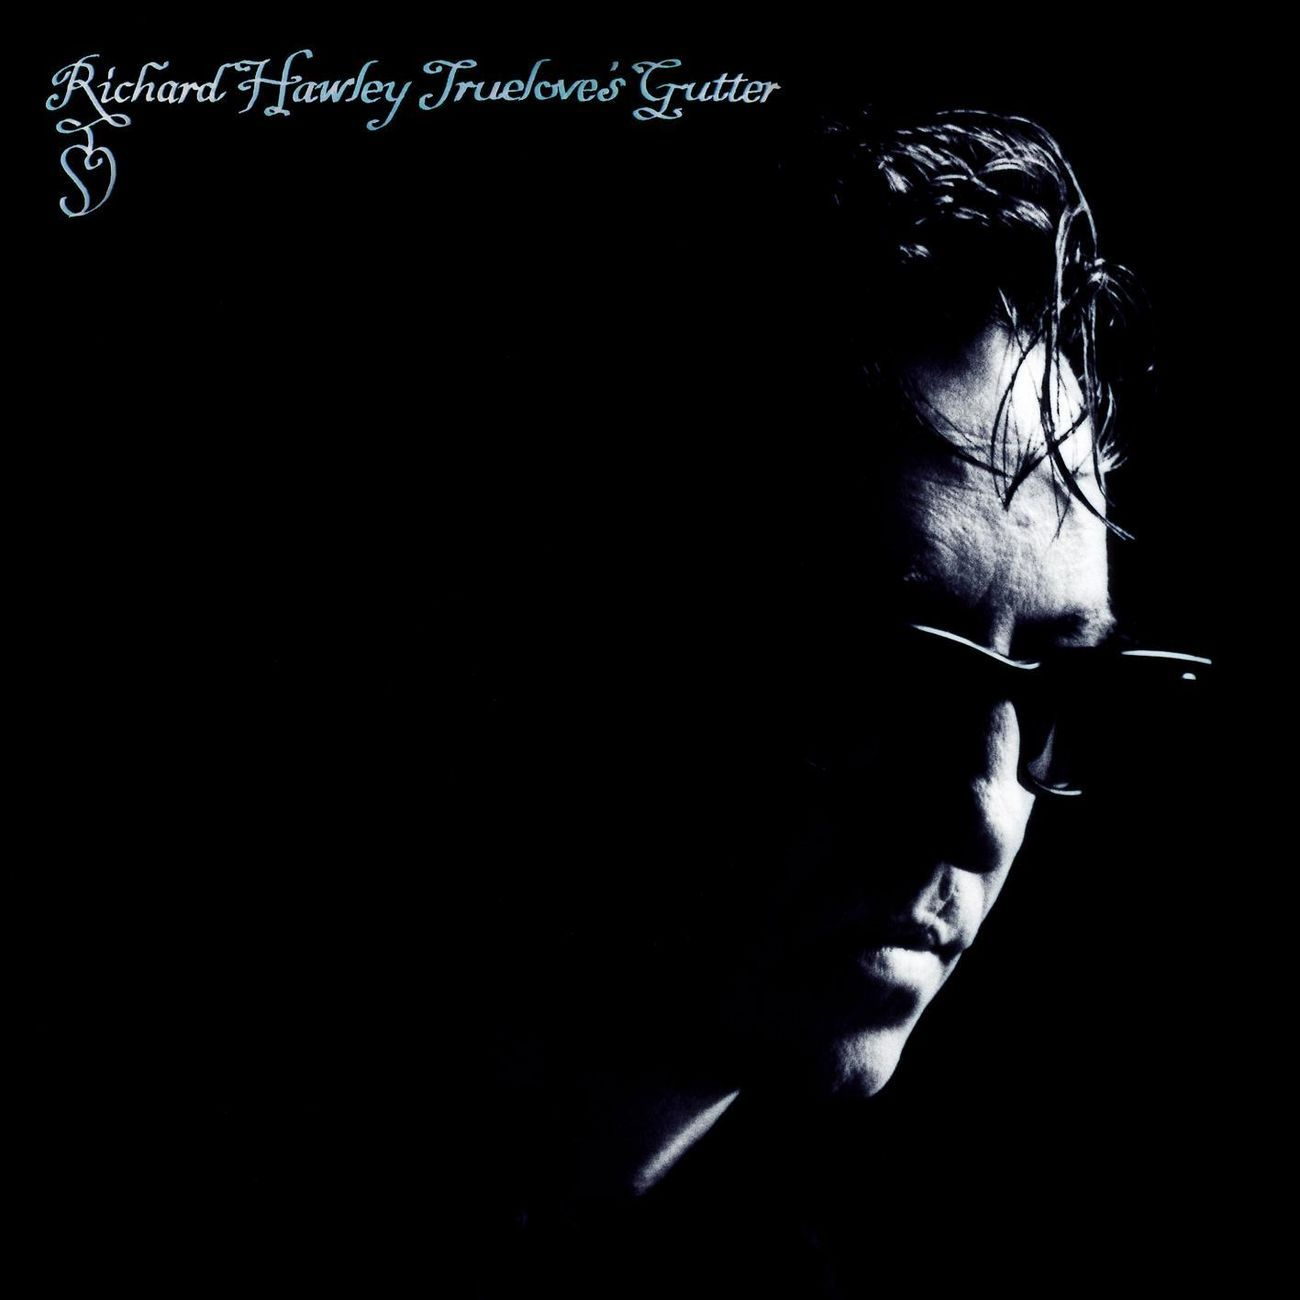 Richard Hawley - Truelove's Gutter album cover